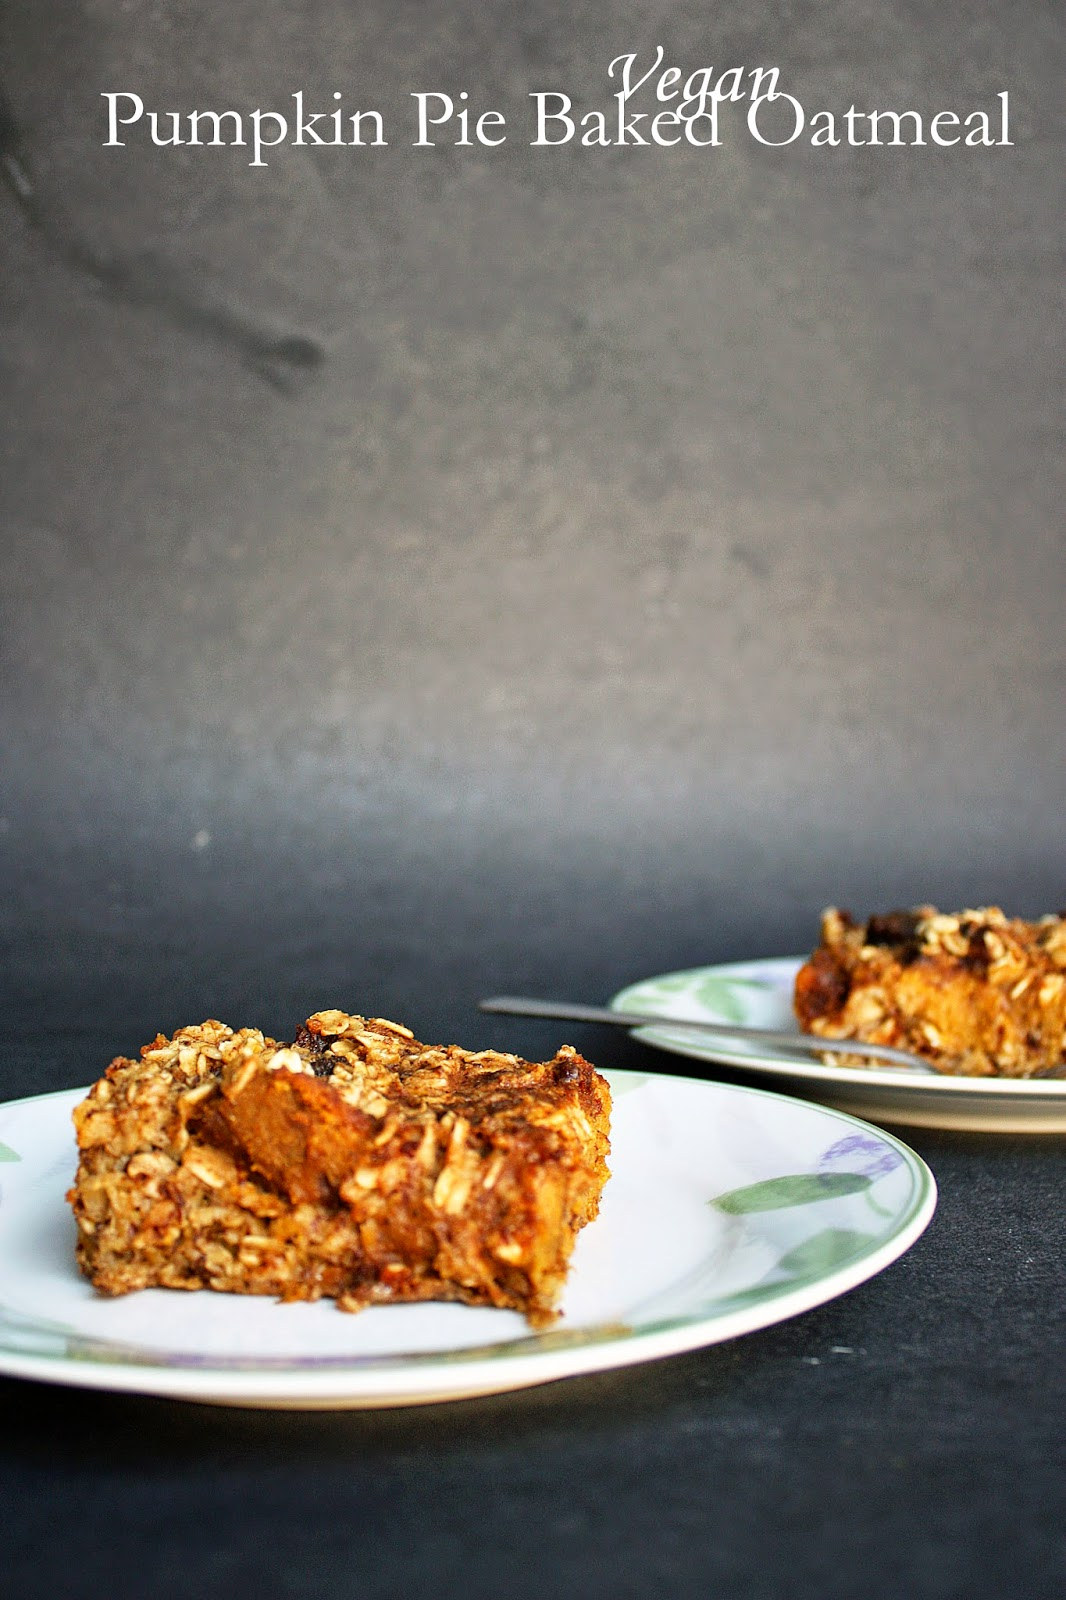 vegan leftover pumpkin pie baked oatmeal